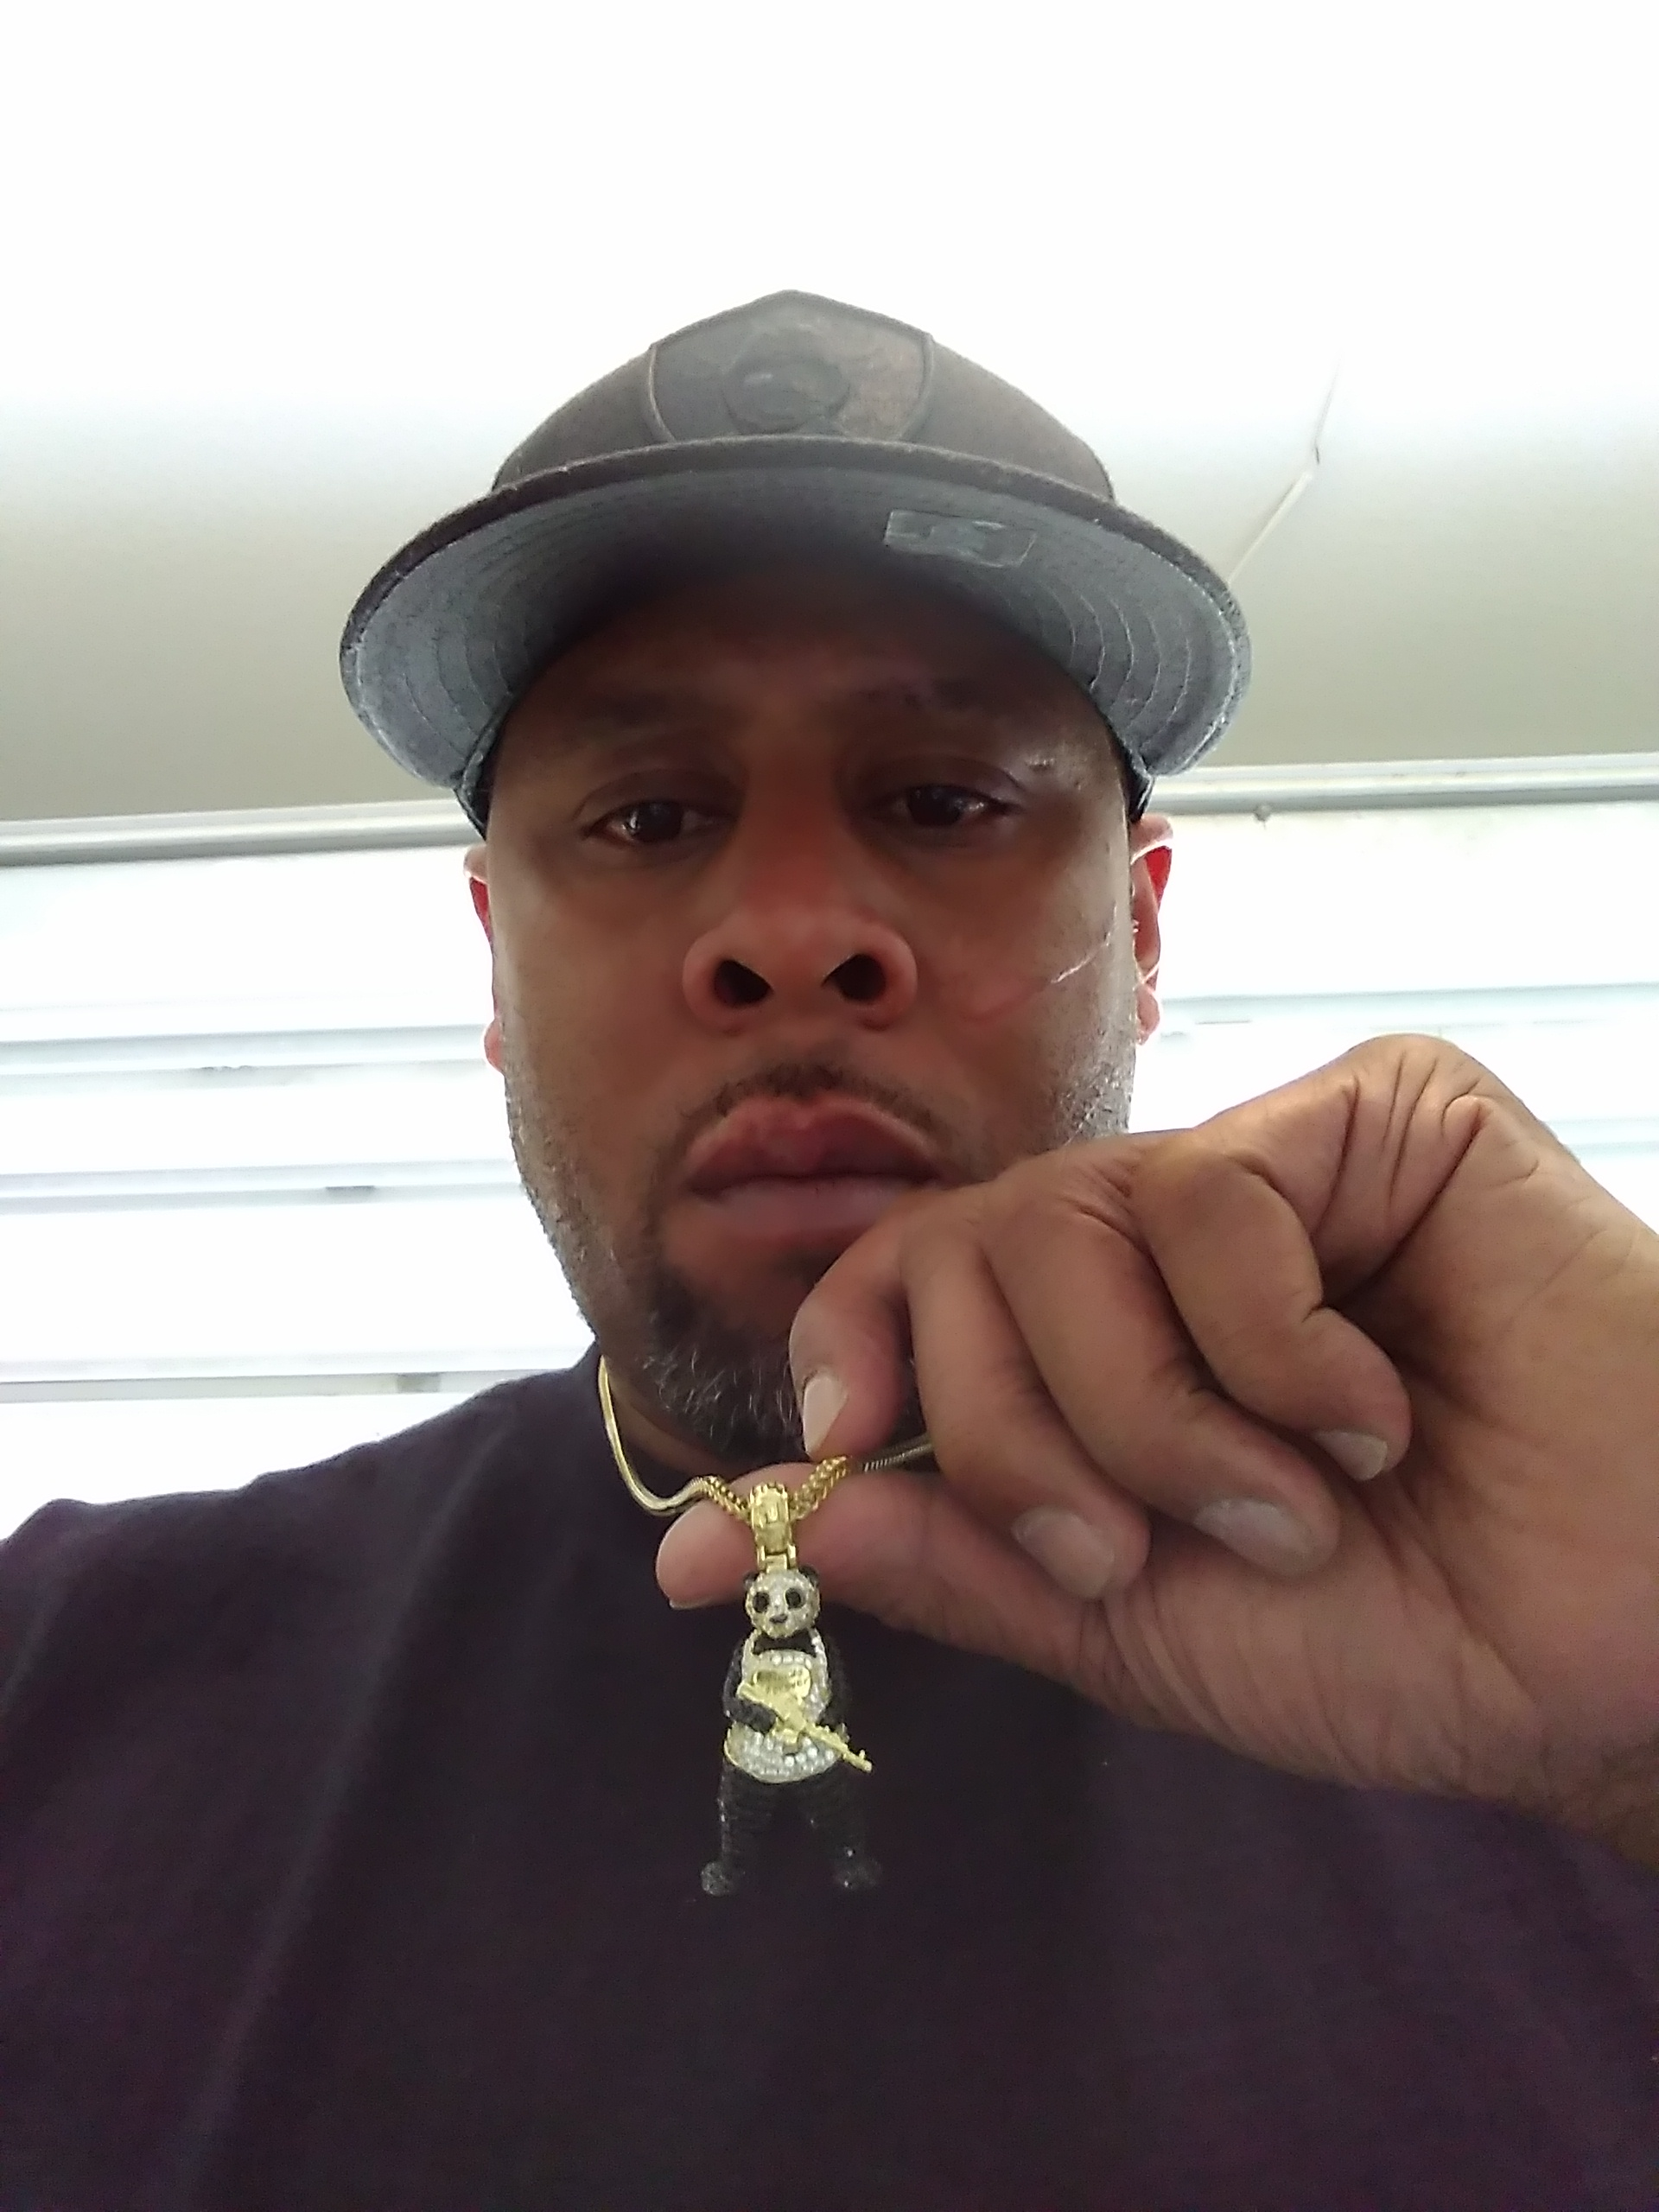 Kingice Replied: Thats A Dope Picture! We Are Glad You Like The  Pendant! We Hope To Hear From You Again Soon